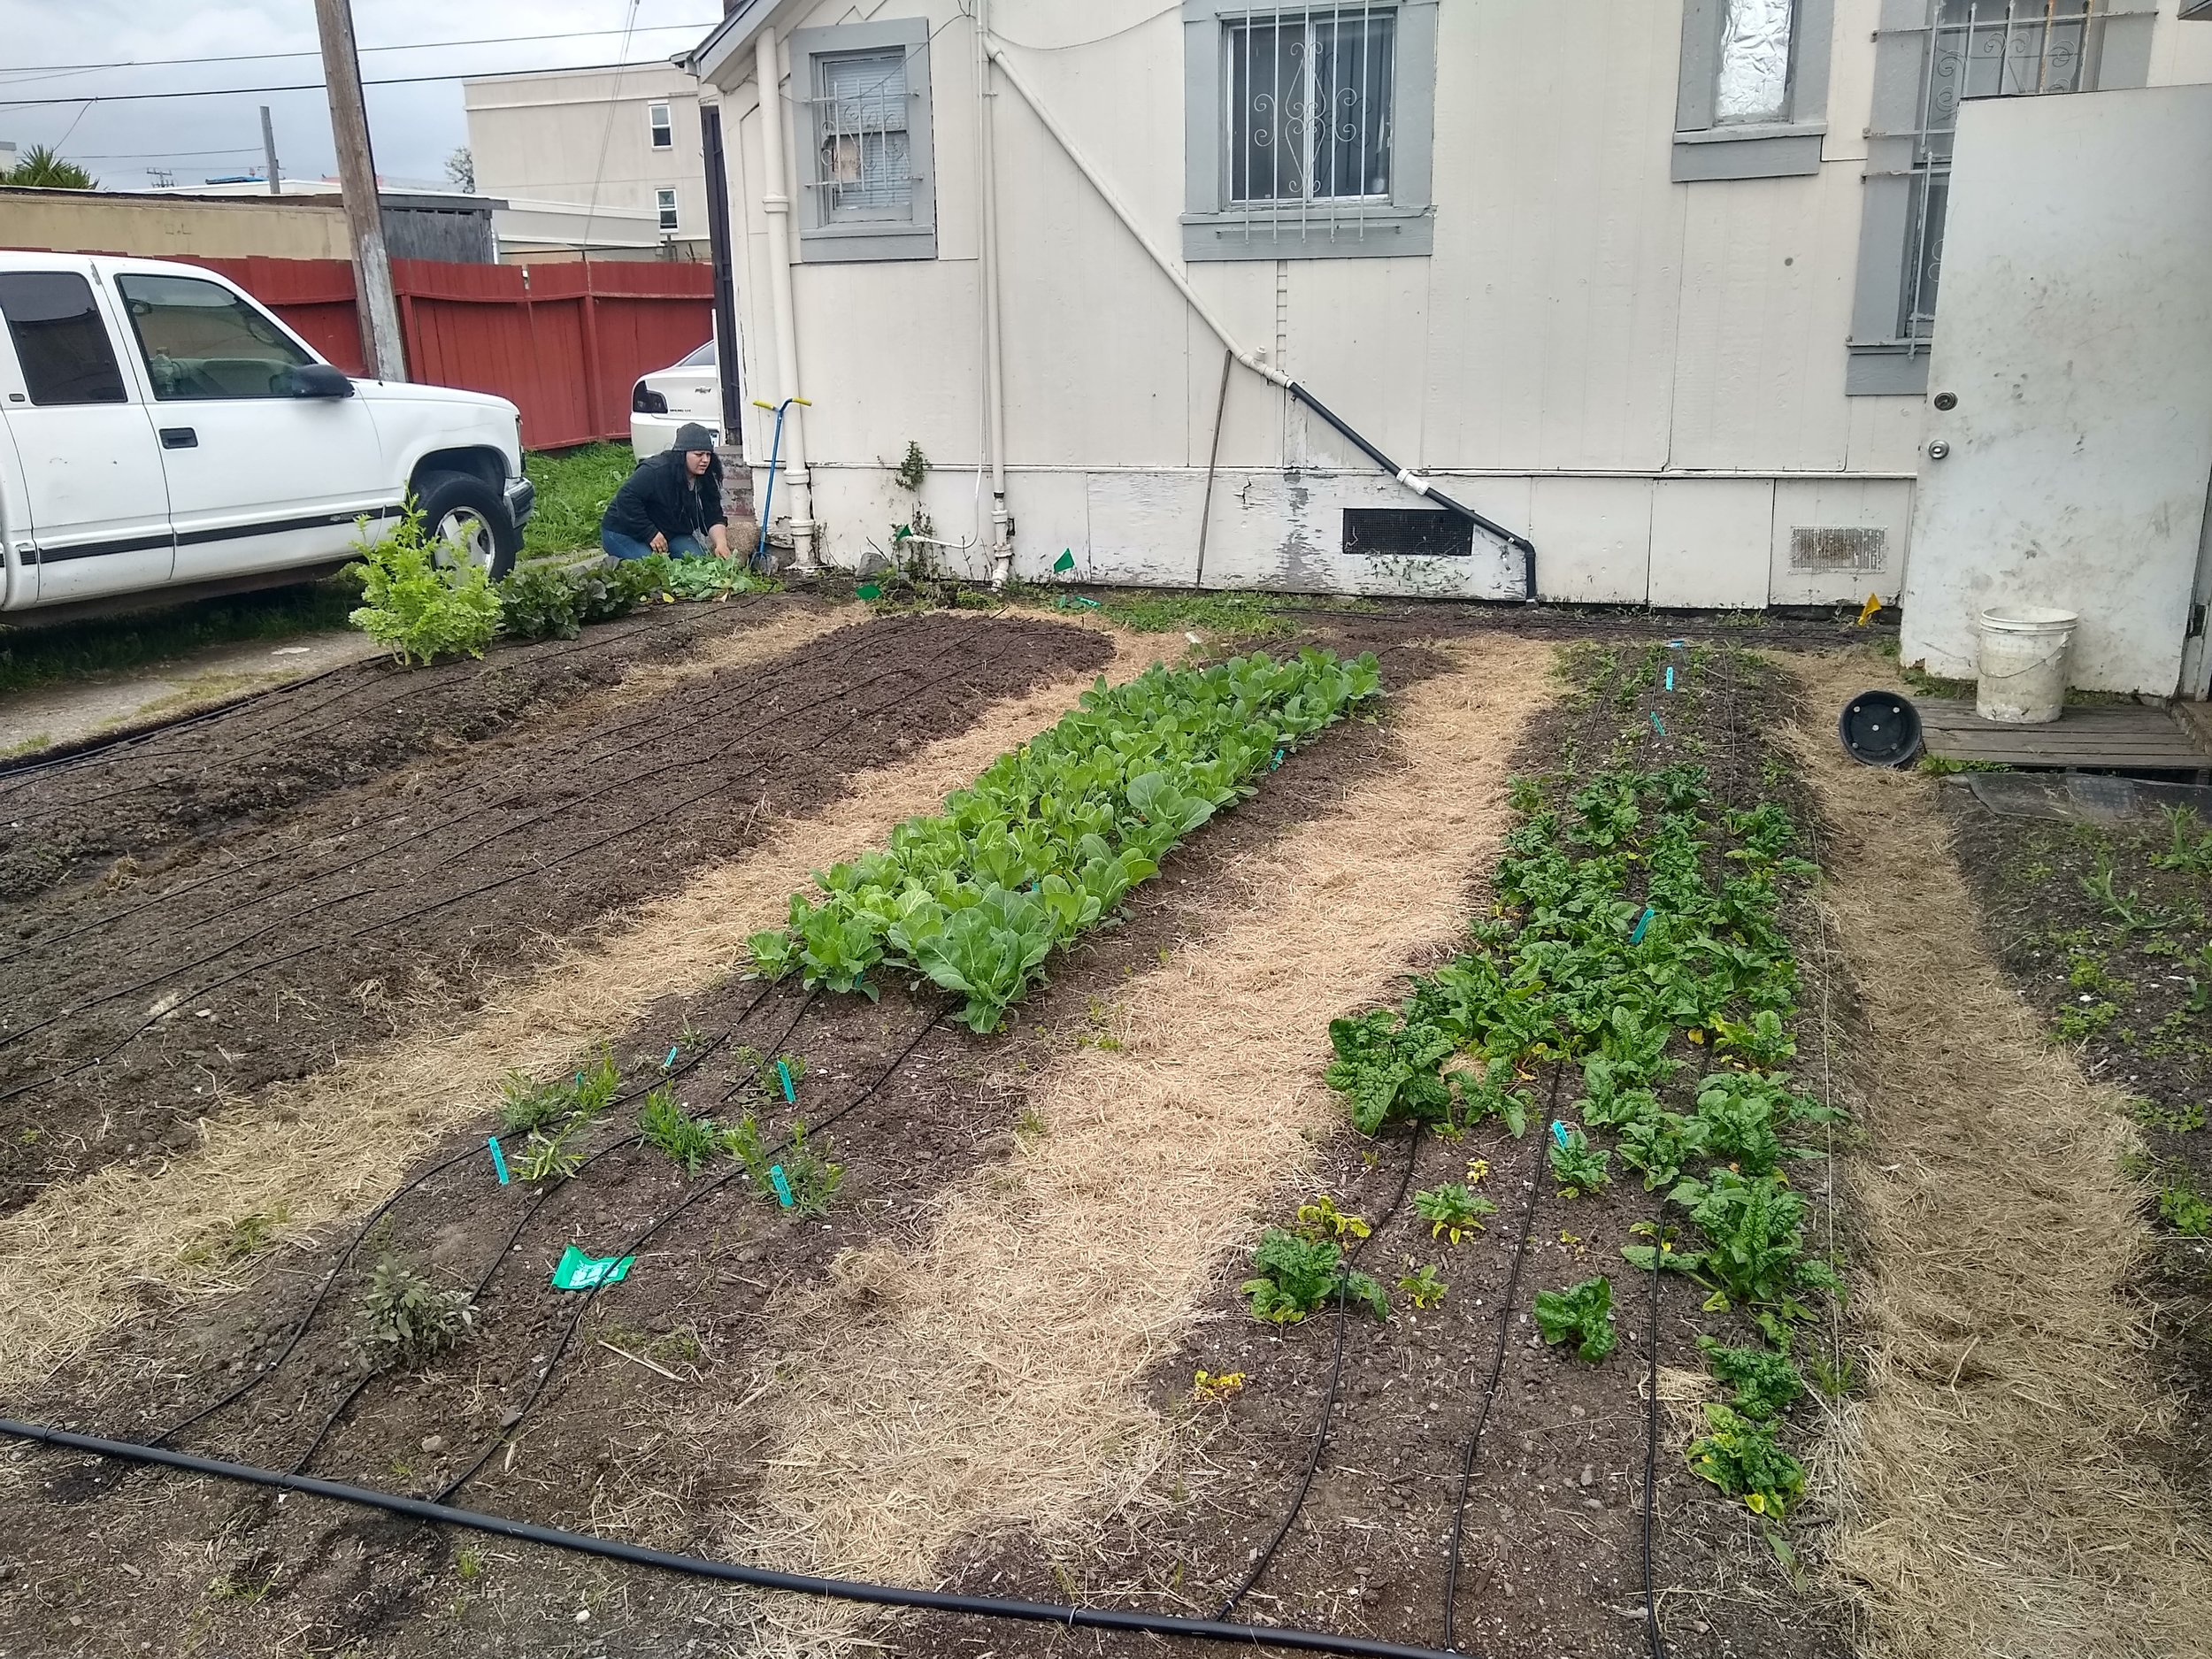 Community Justice Garden Build @ Bay Area Rescue Mission IMG 20190408 151703390 HDR